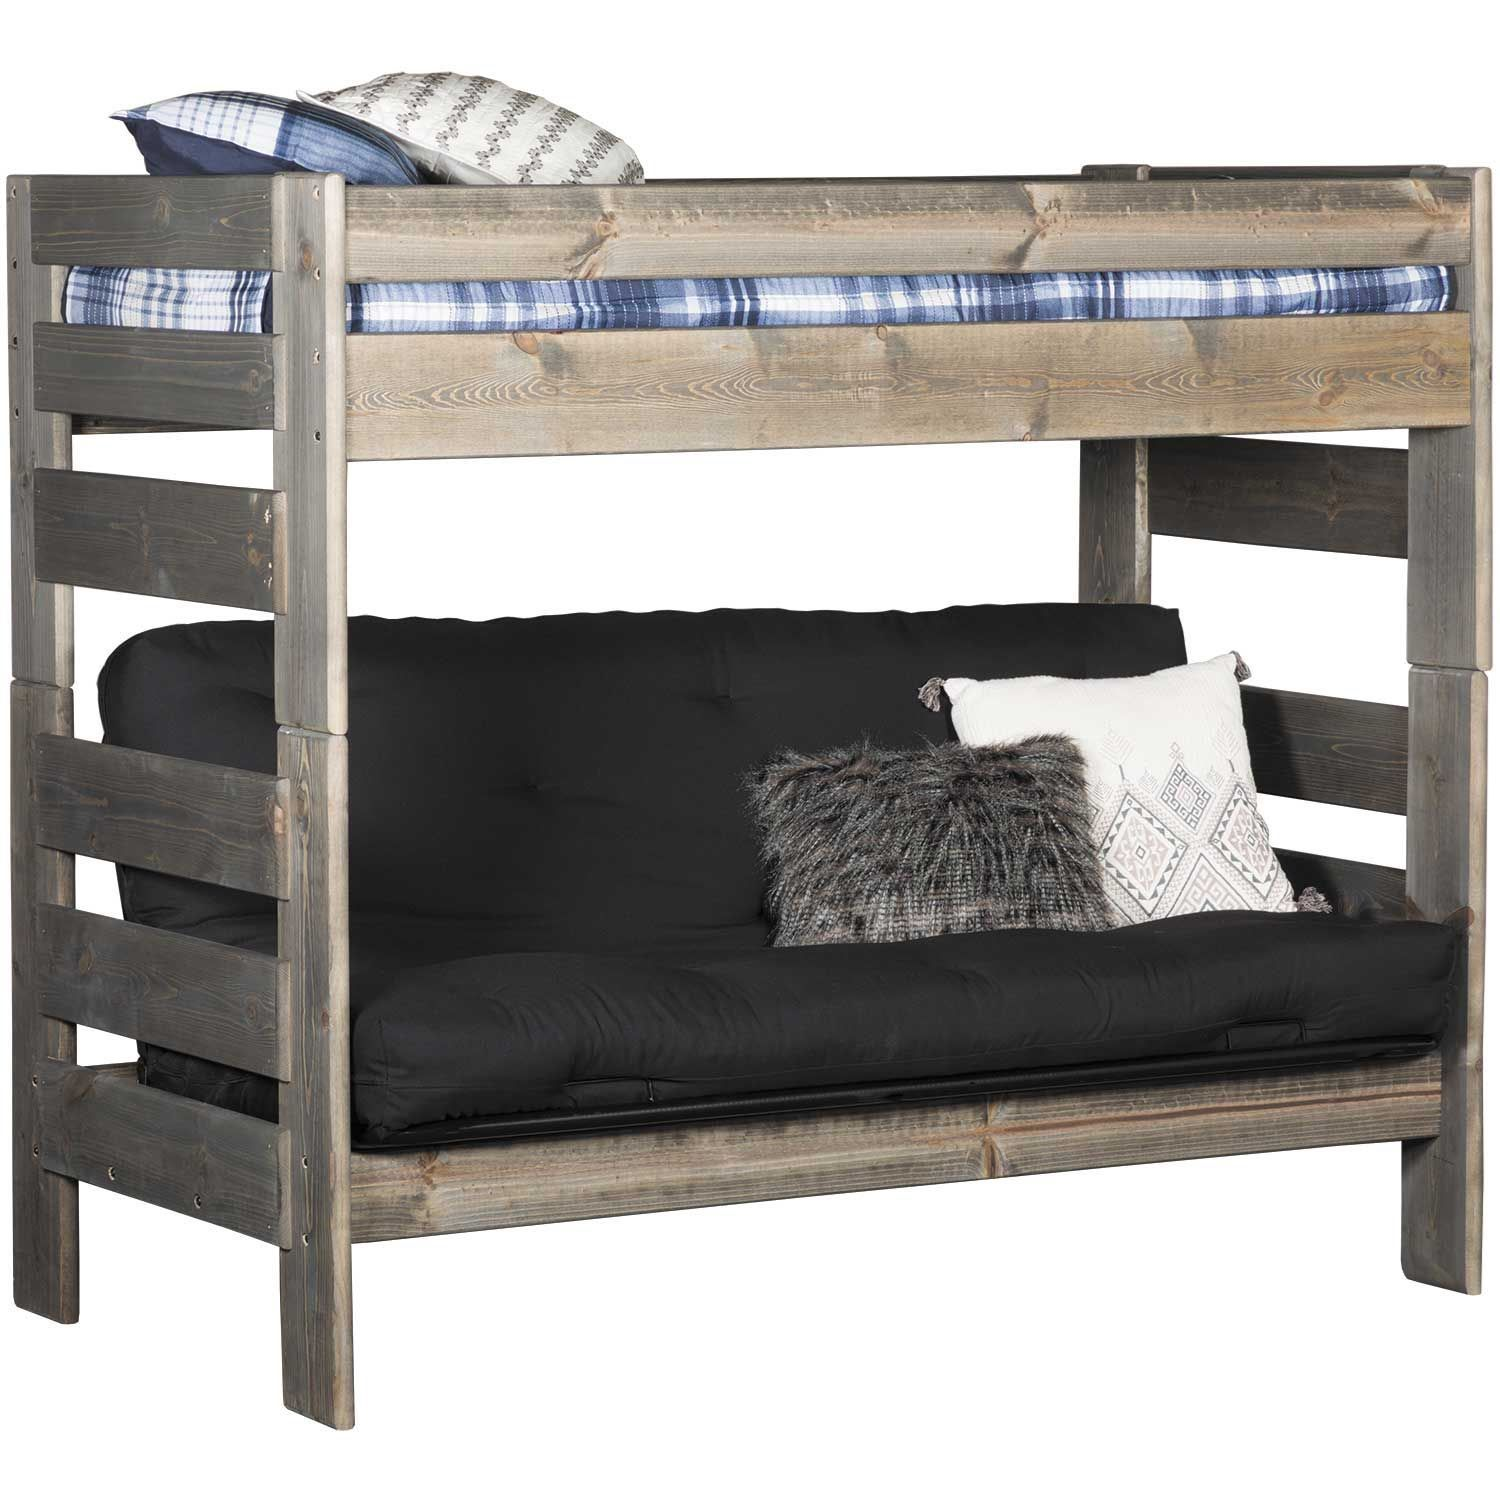 Cheyenne Driftwood Twin Over Twin Futon Bunk Bed In 2021 Futon Bunk Bed Kids Bunk Beds Bunk Beds Full over full futon bunk bed